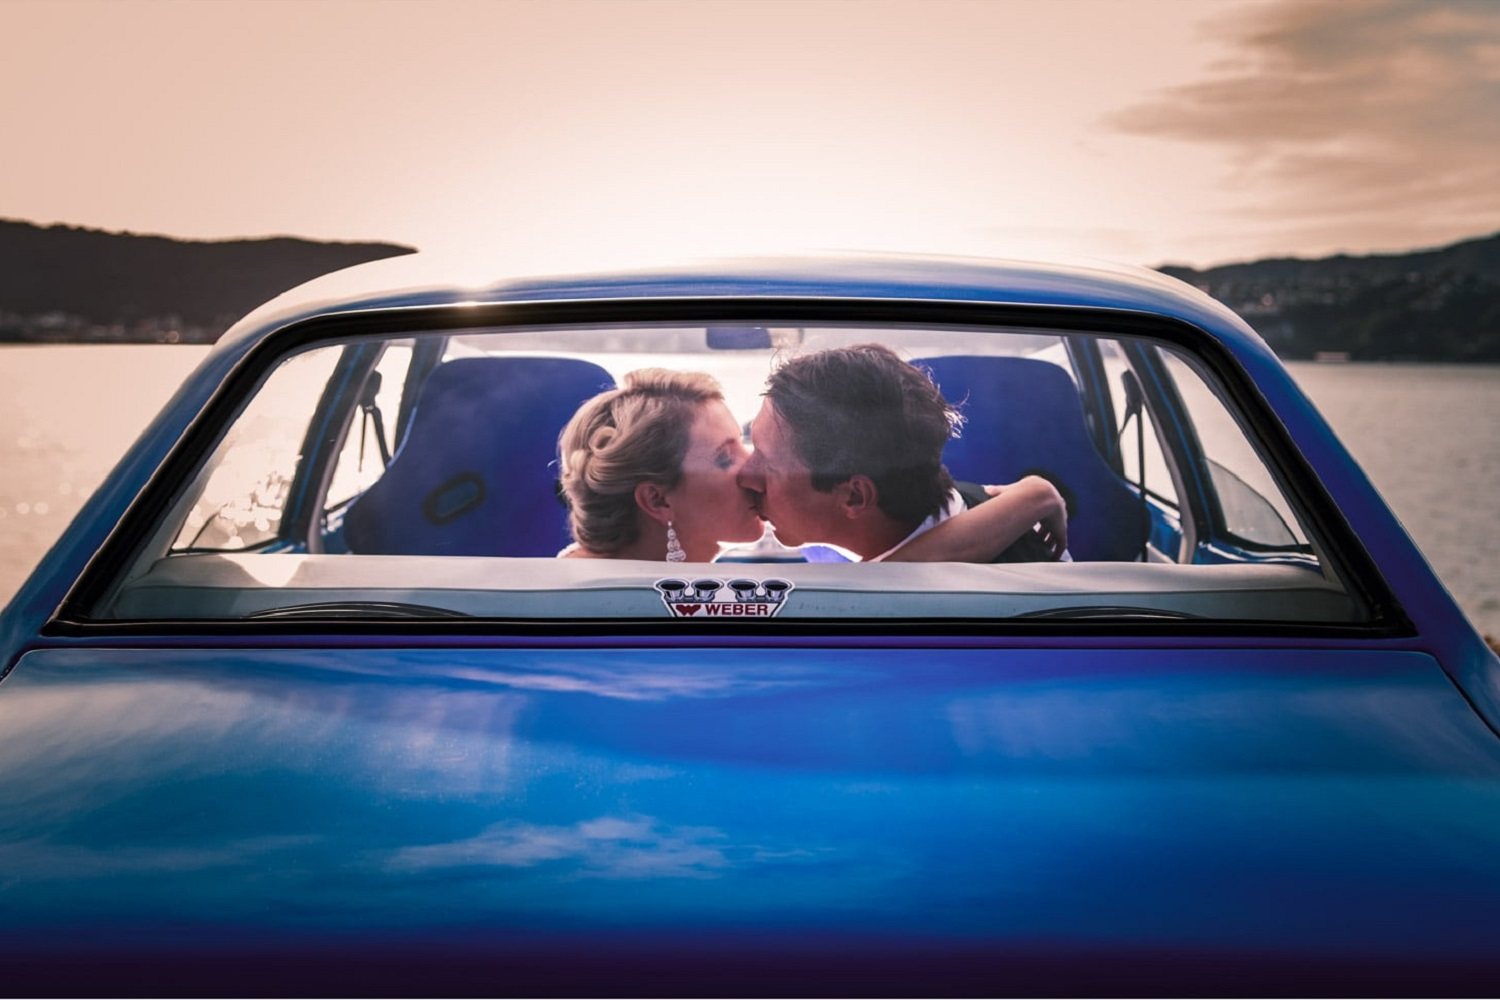 Bride and groom kissing in blue vintage car.jpg